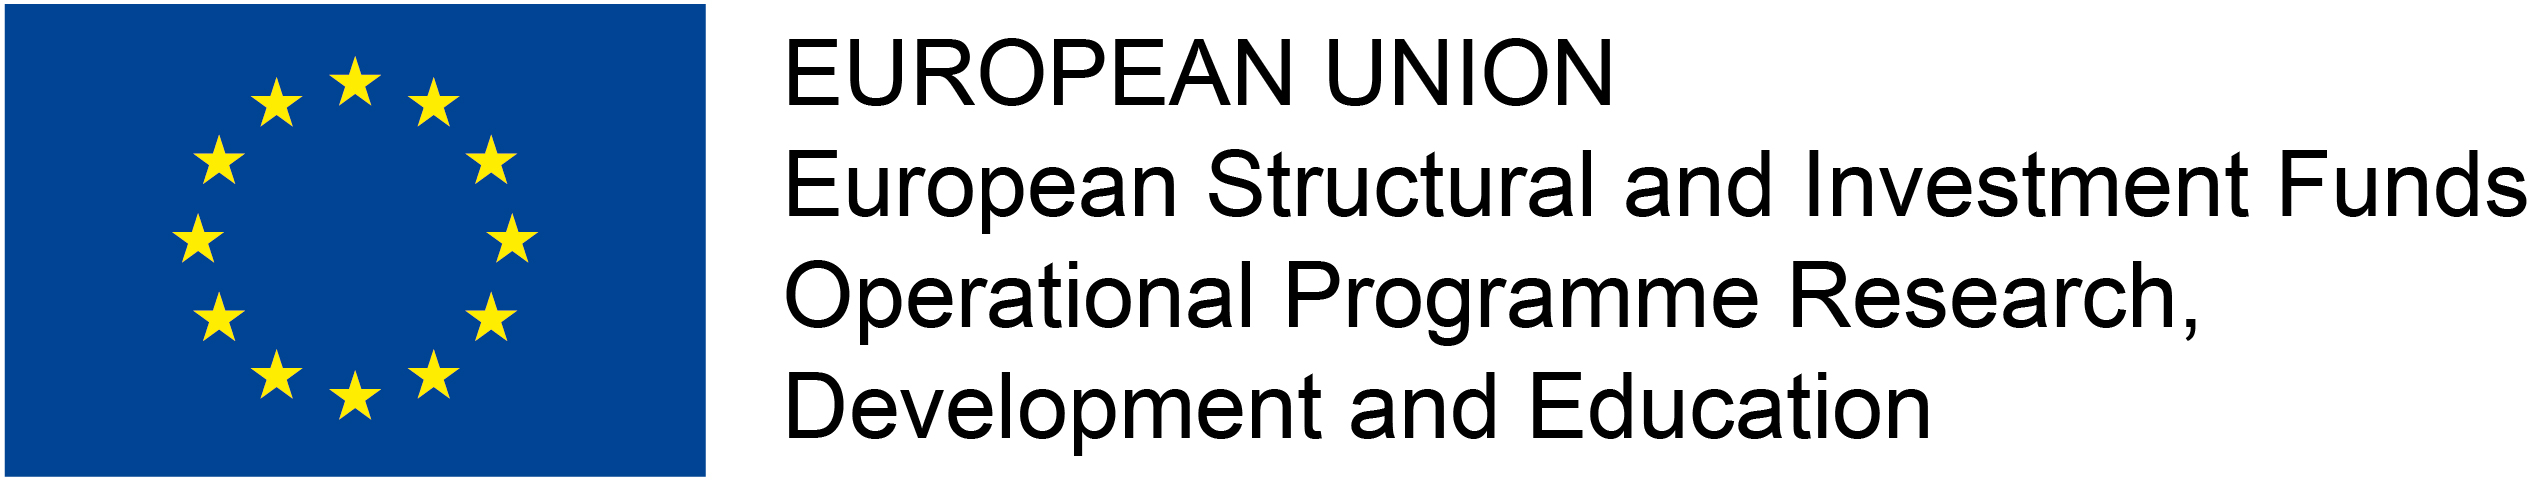 EU - Operational Programme Research, Development and Education